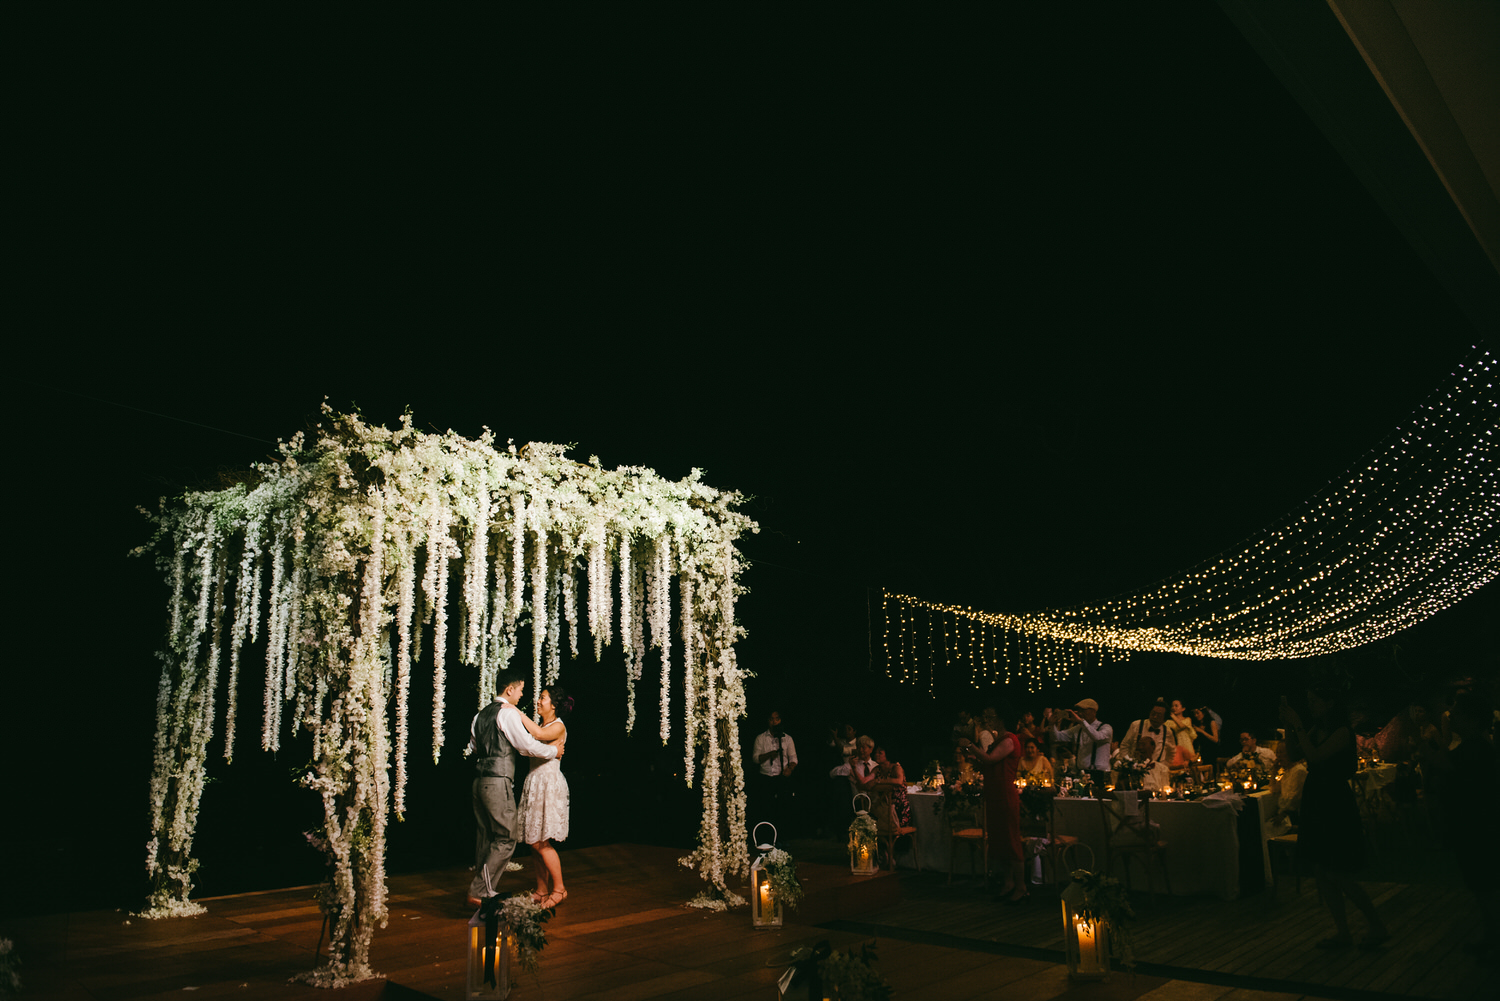 phuket wedding-diktatphotography-alex&andy wedding-150